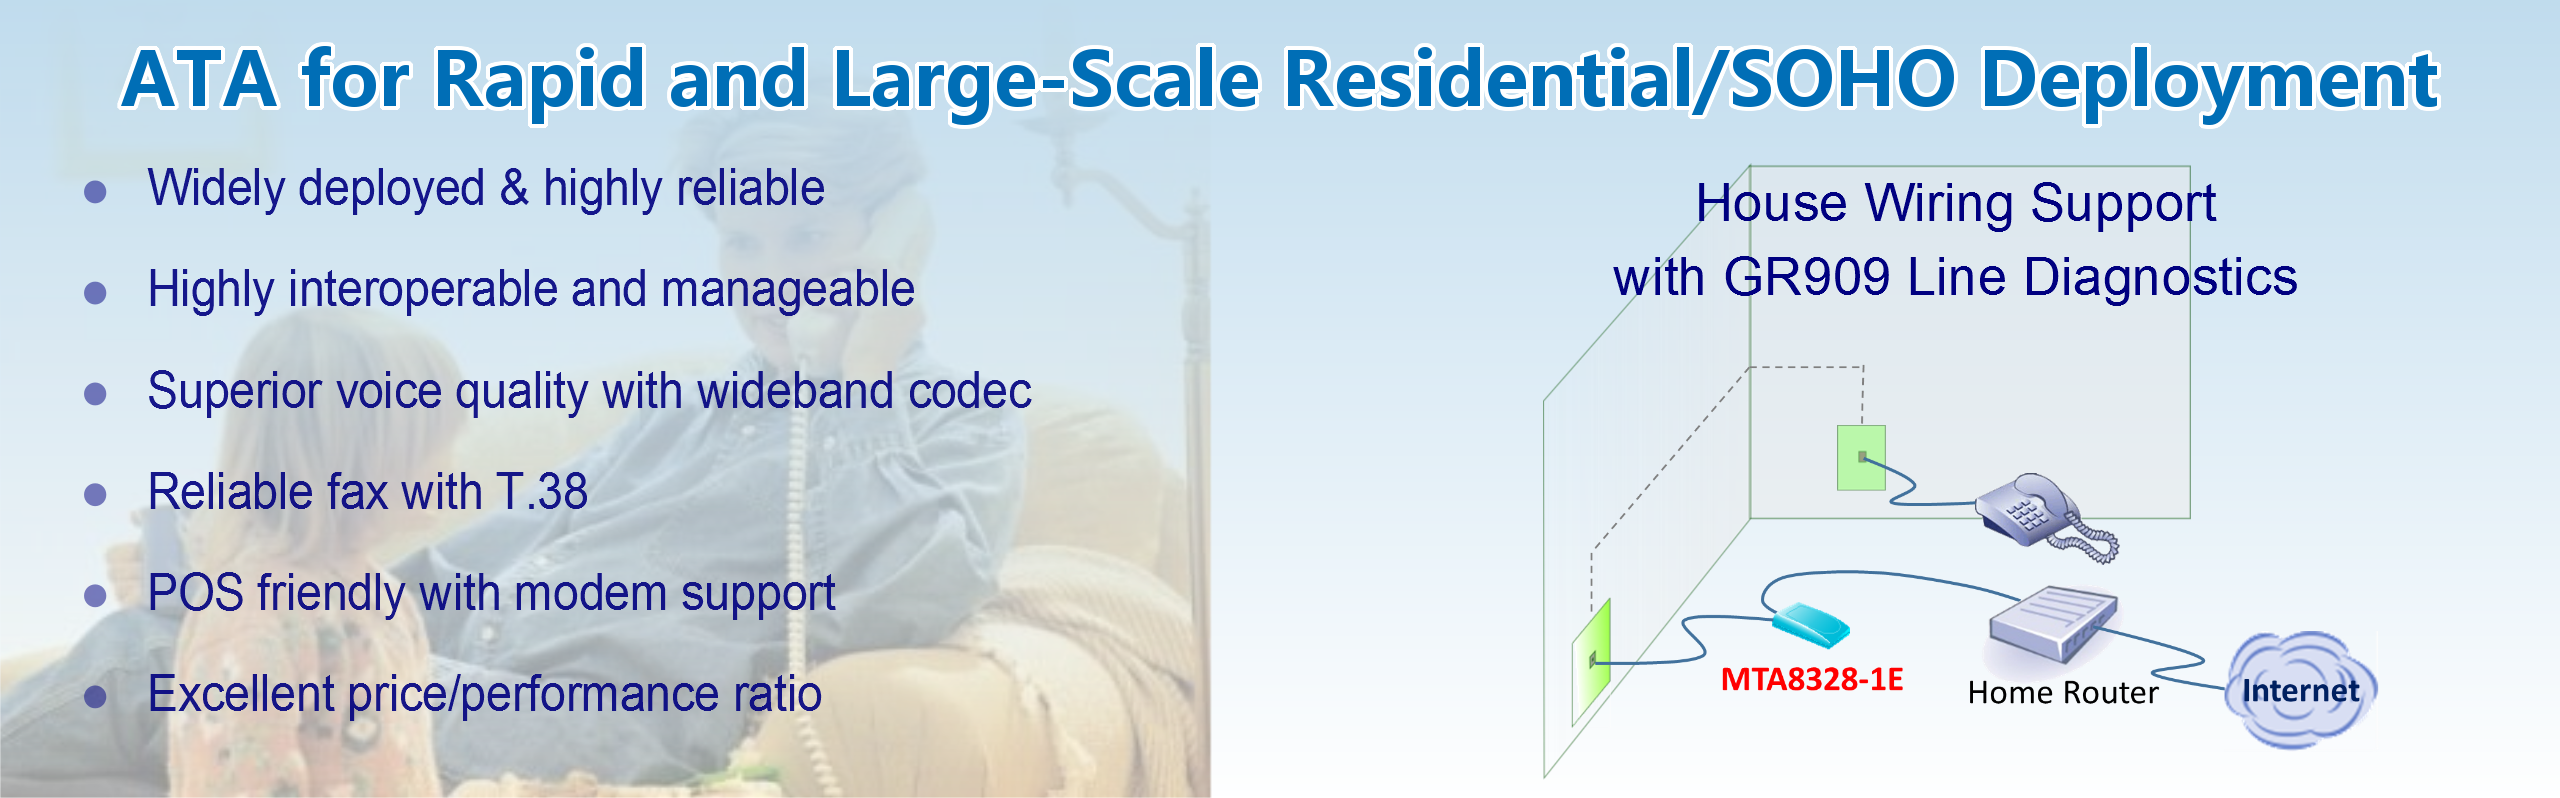 ATA for Rapid and Large-Scale Residential/SOHO Deployment